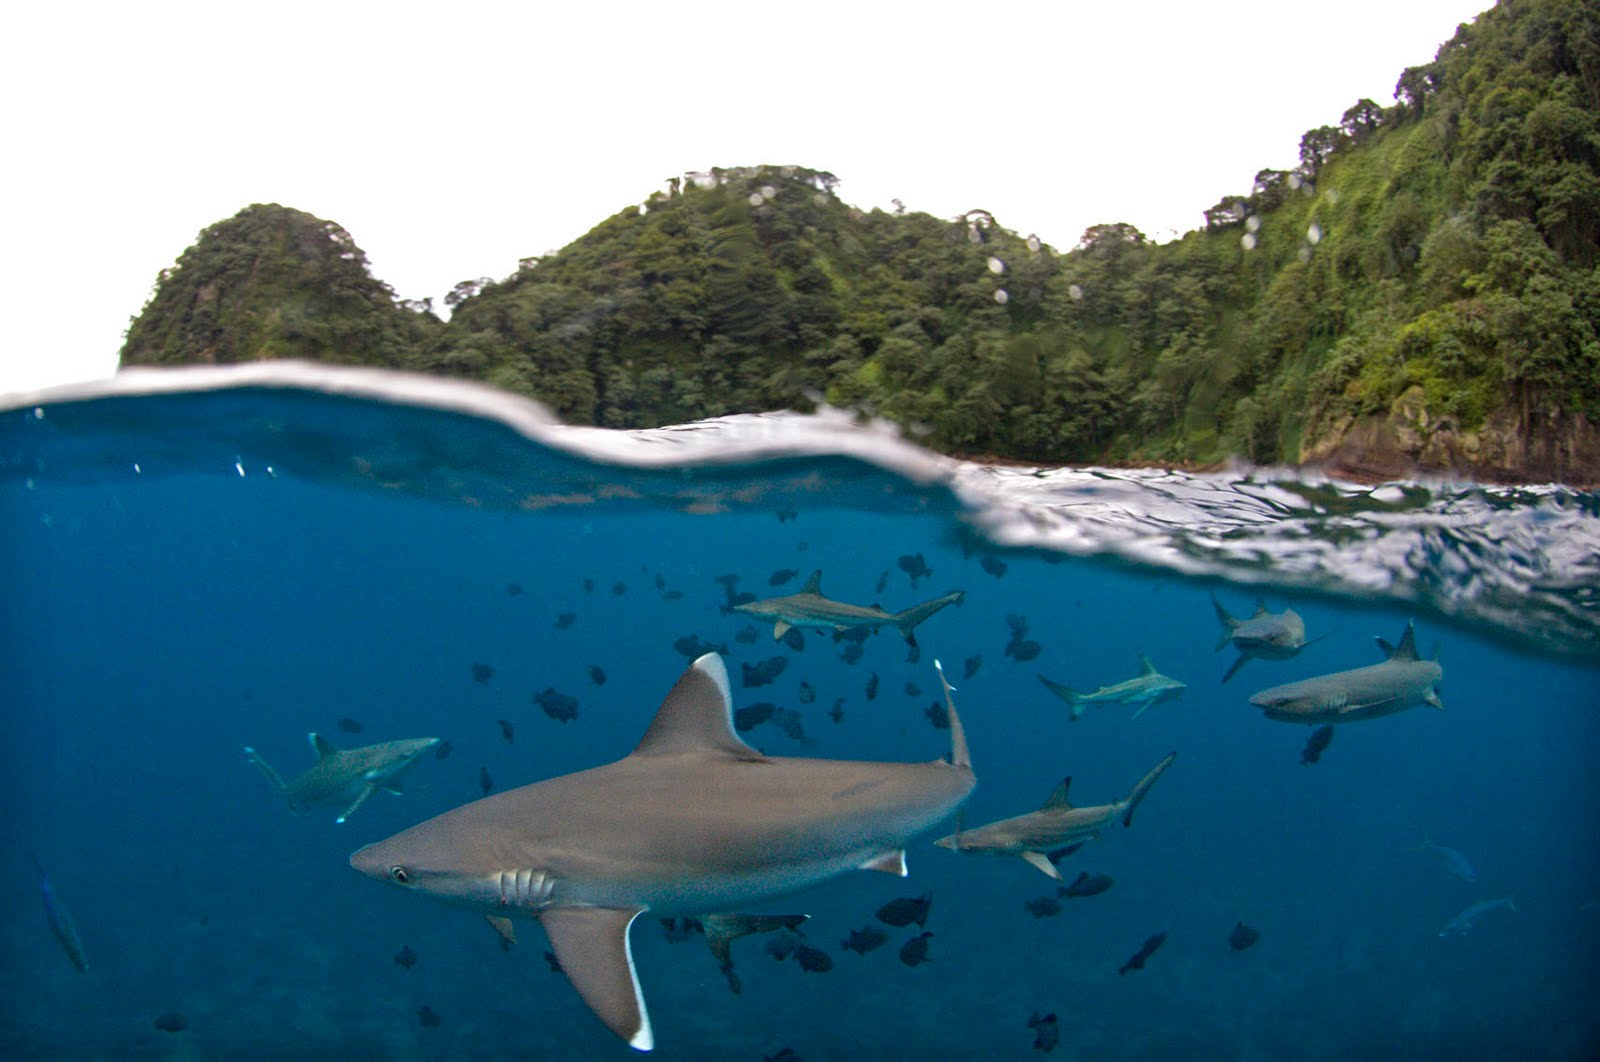 TV with Thinus: National Geographic travels to Shark Island